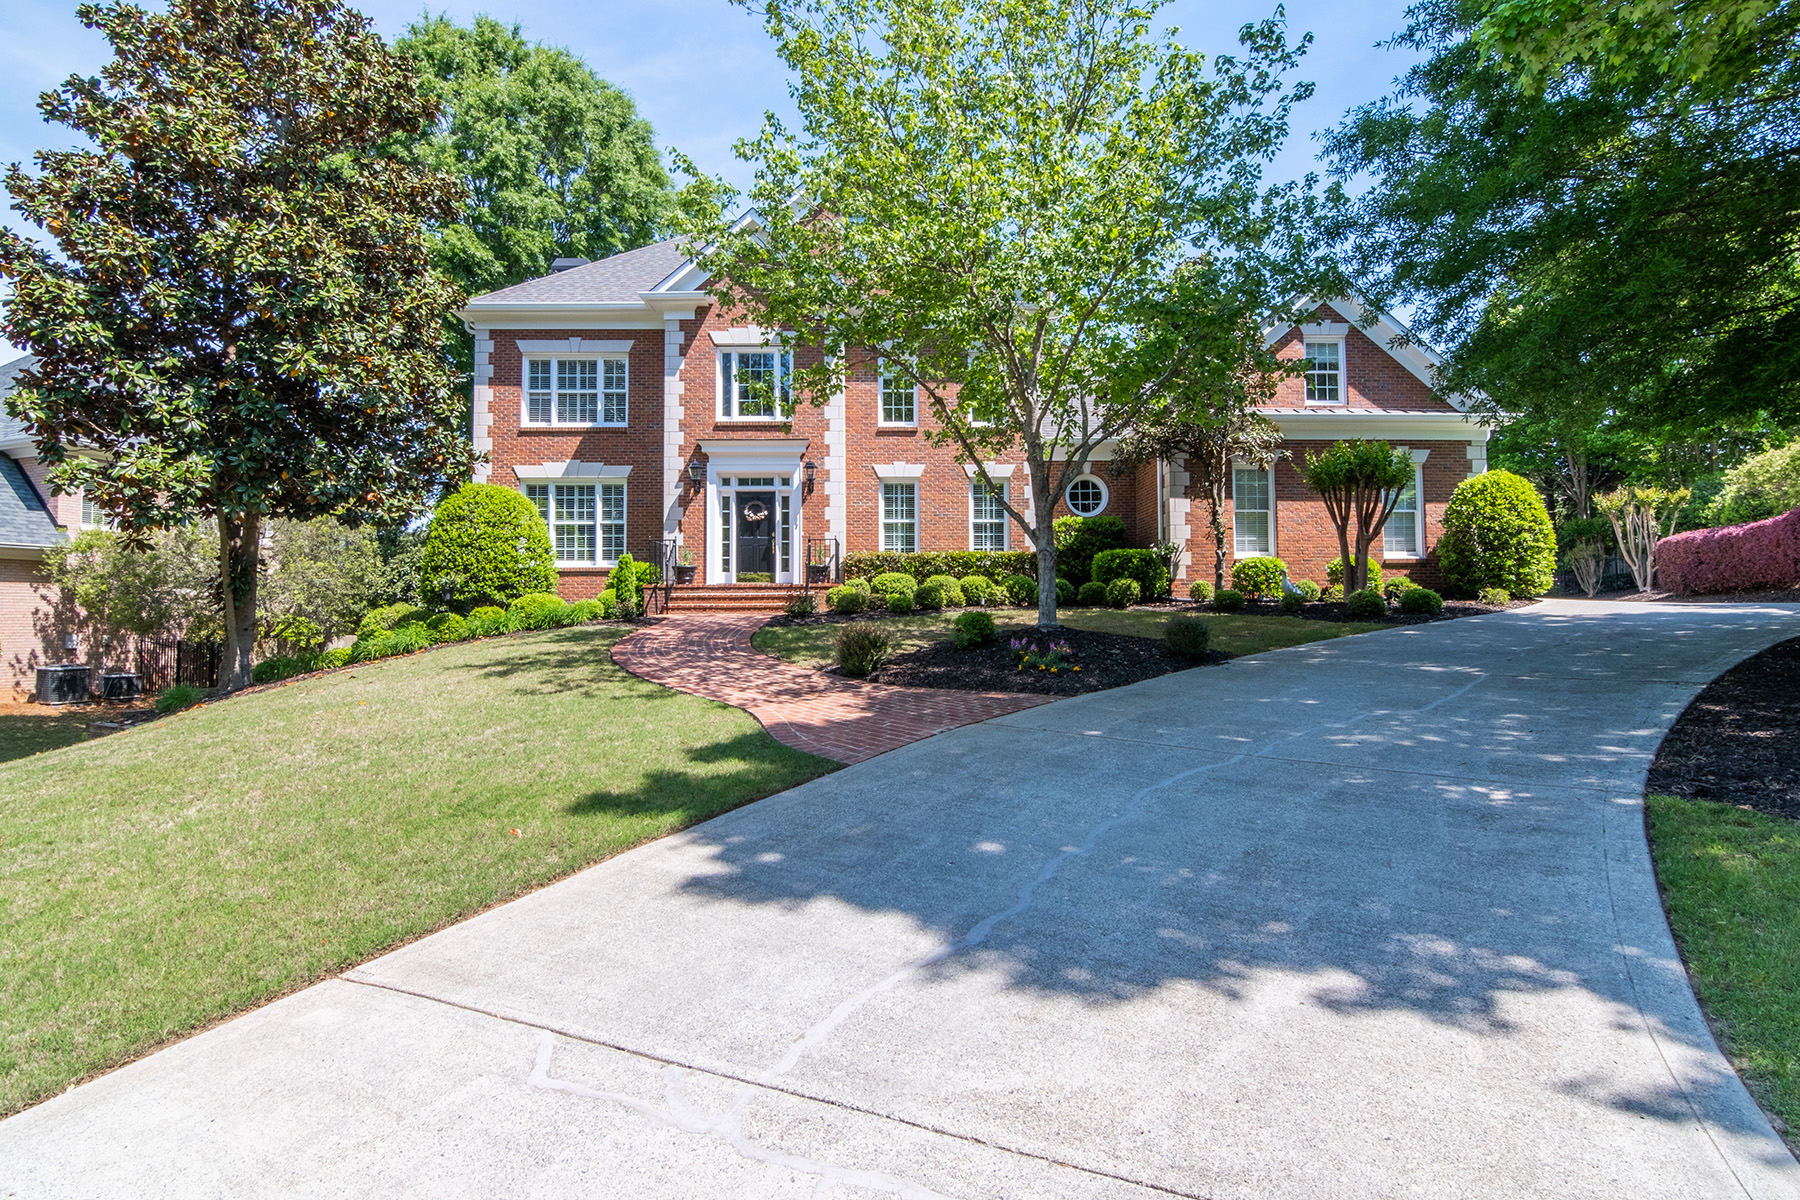 Single Family Homes for Sale at Coveted Property in Nesbit Downs 620 Saddleview Ct Sandy Springs, Georgia 30350 United States